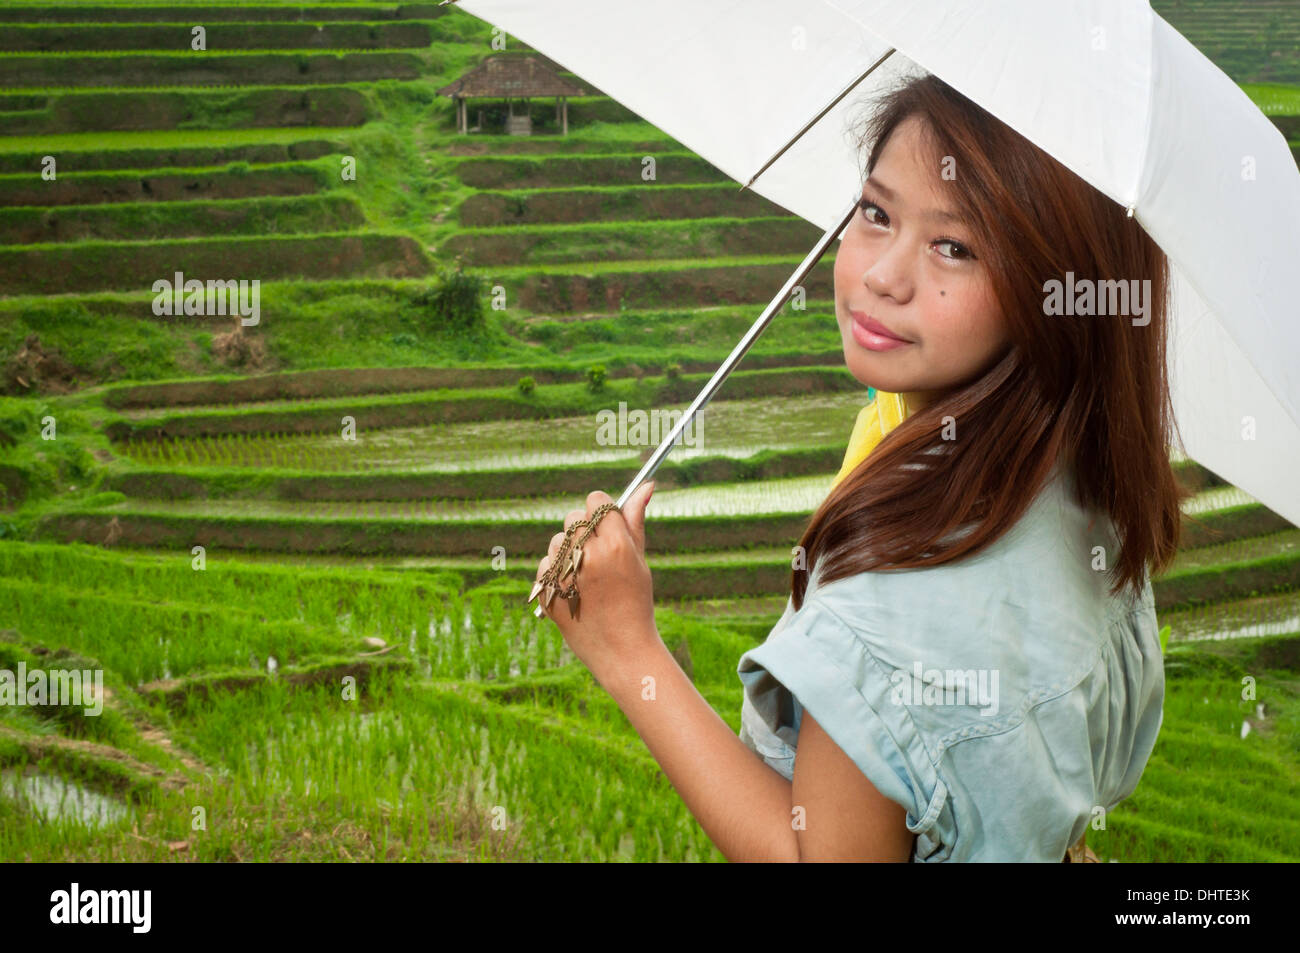 Photo of young employees in rice fields green outdoor. - Stock Image